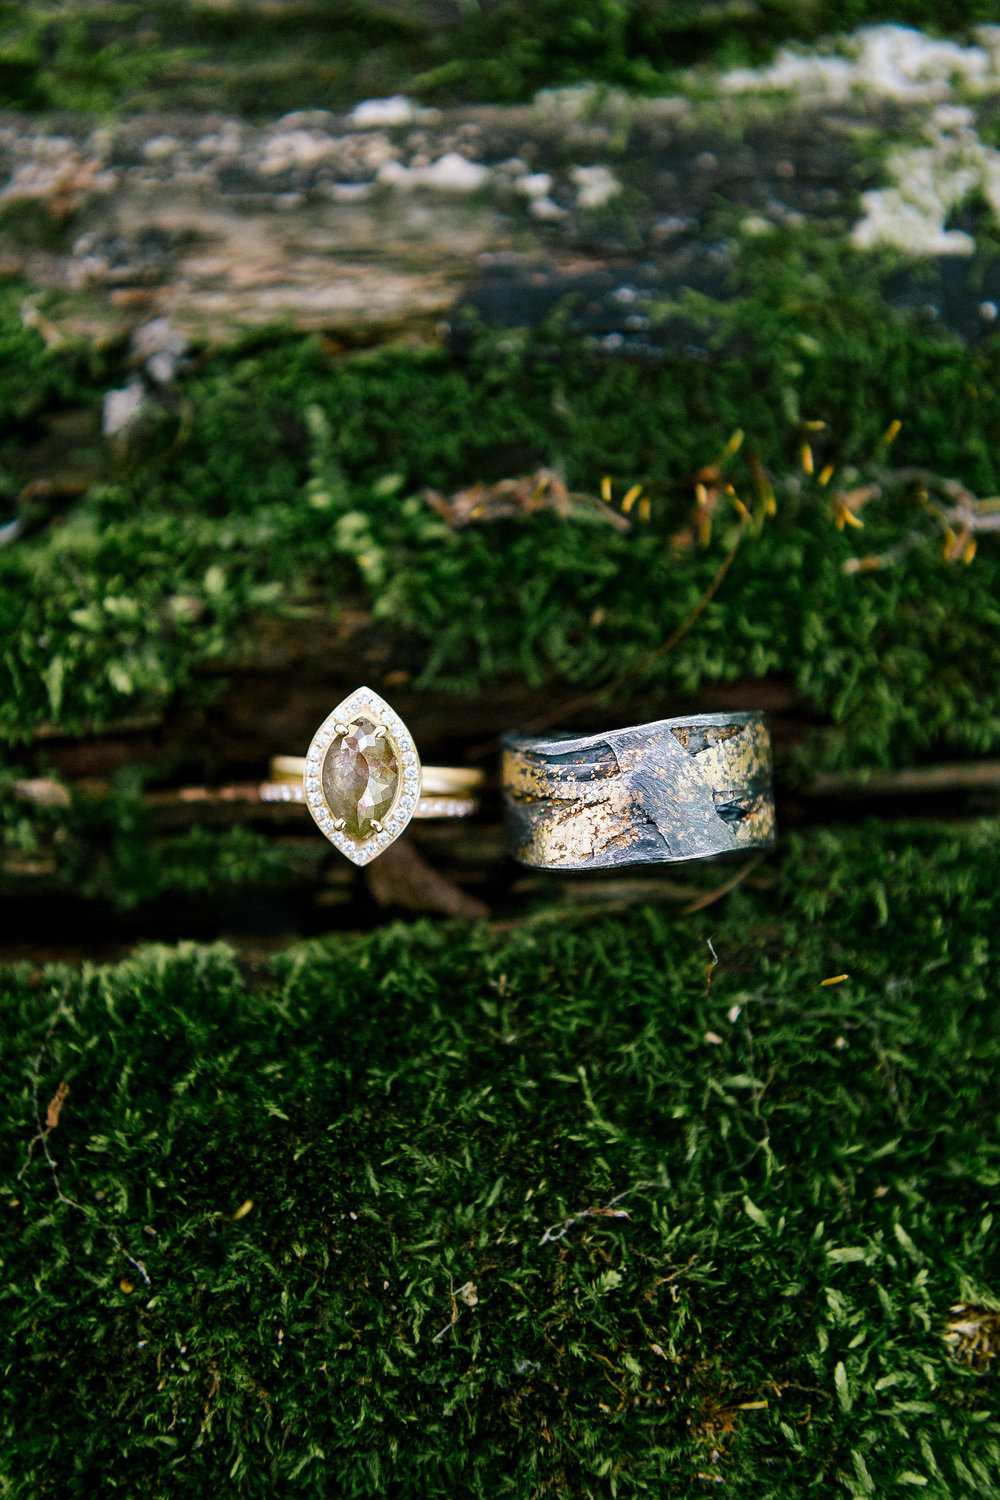 Allison_Hopperstad_Photography_Acowsay_Wedding_Rings.JPG